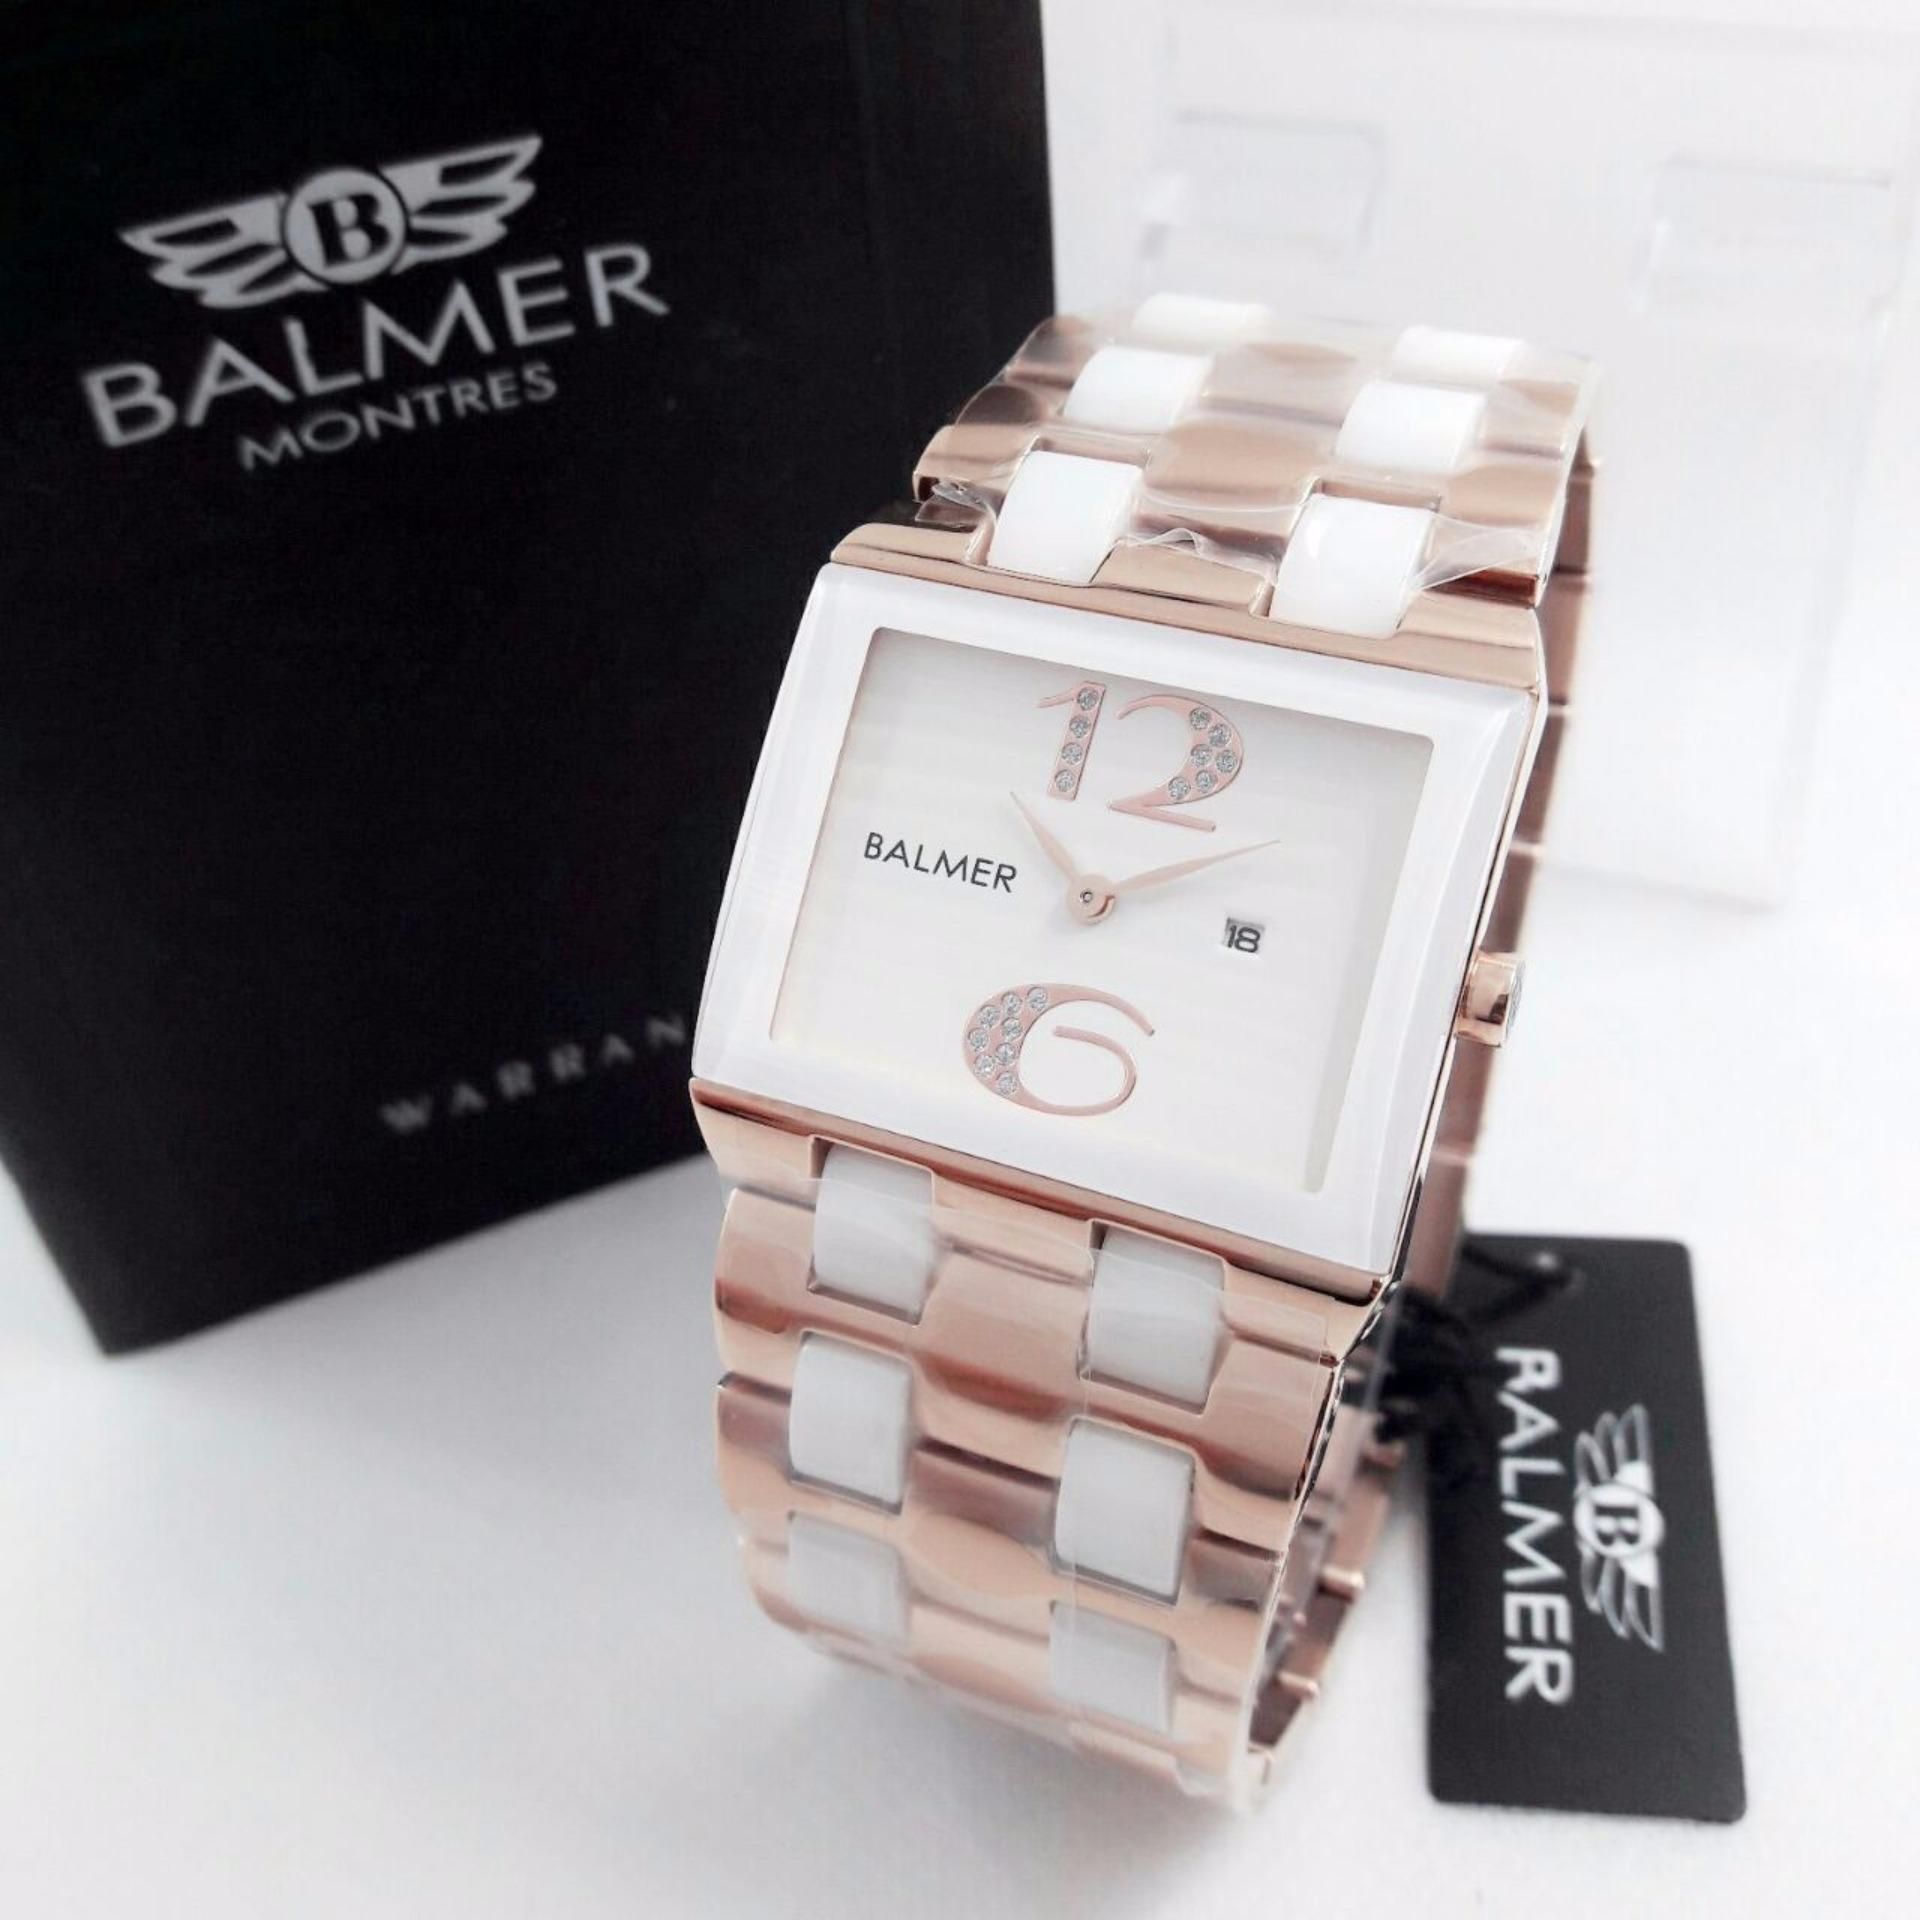 Balmer Jam Tangan Couple Leather Strap Bl 7930 Daftar Harga Casual Man D48h675b7905mckth Chronograph Pria Coklat Fashion Wanita Murah Bl7959wro All Stainless Quartz